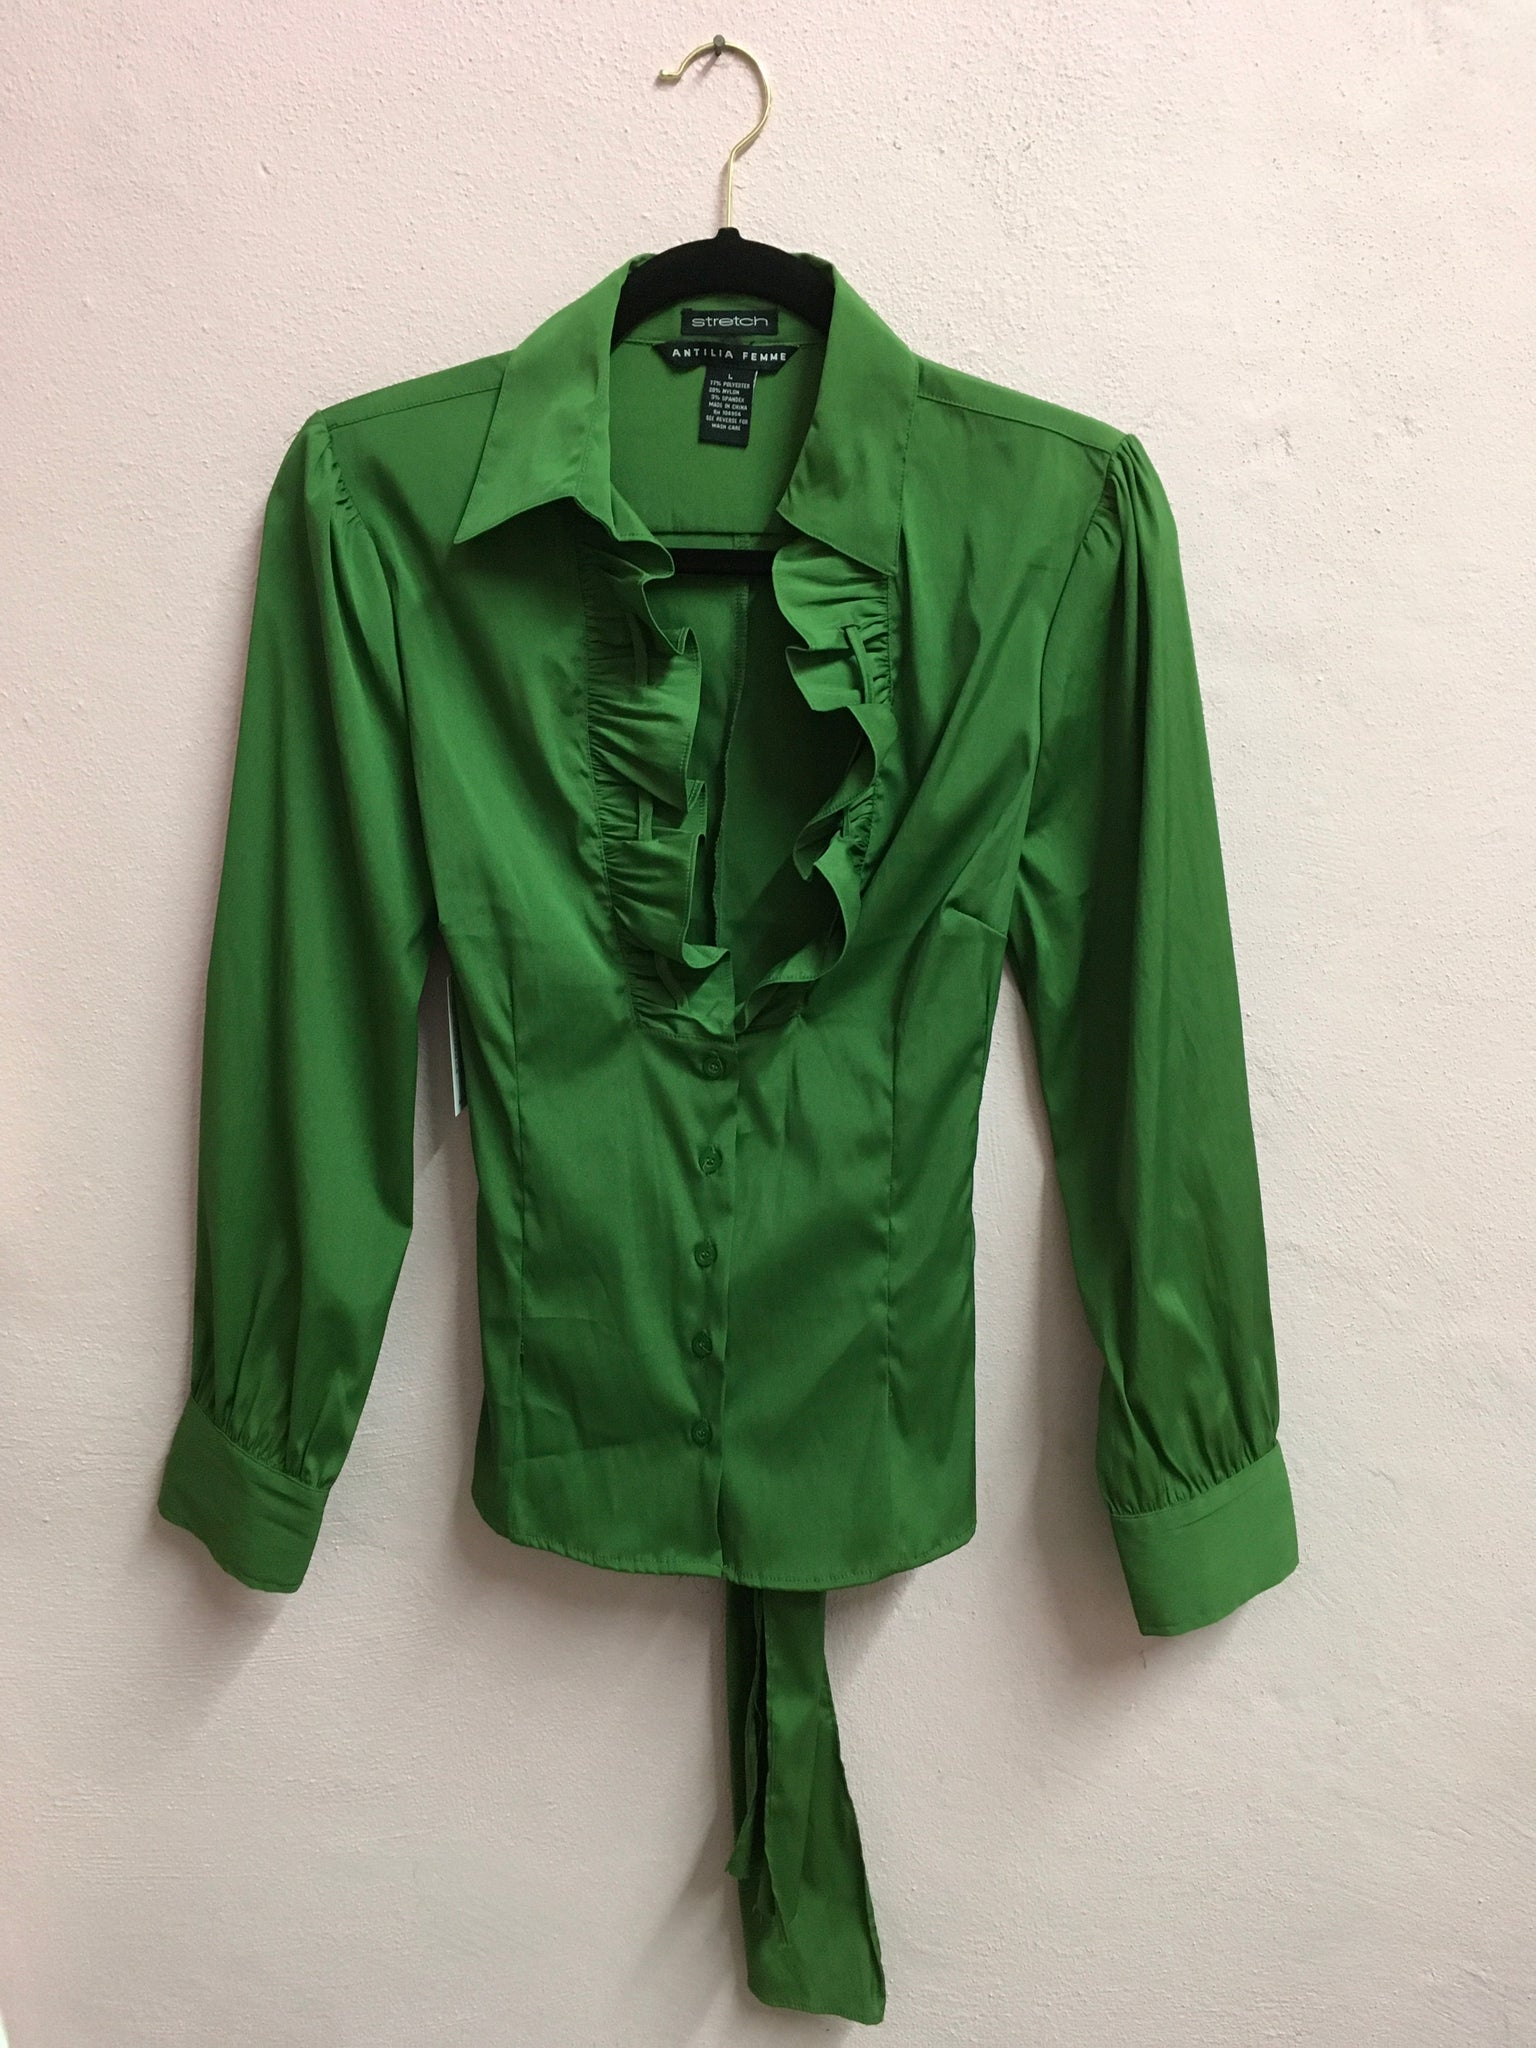 Early 2000s Green Ruffle Blouse